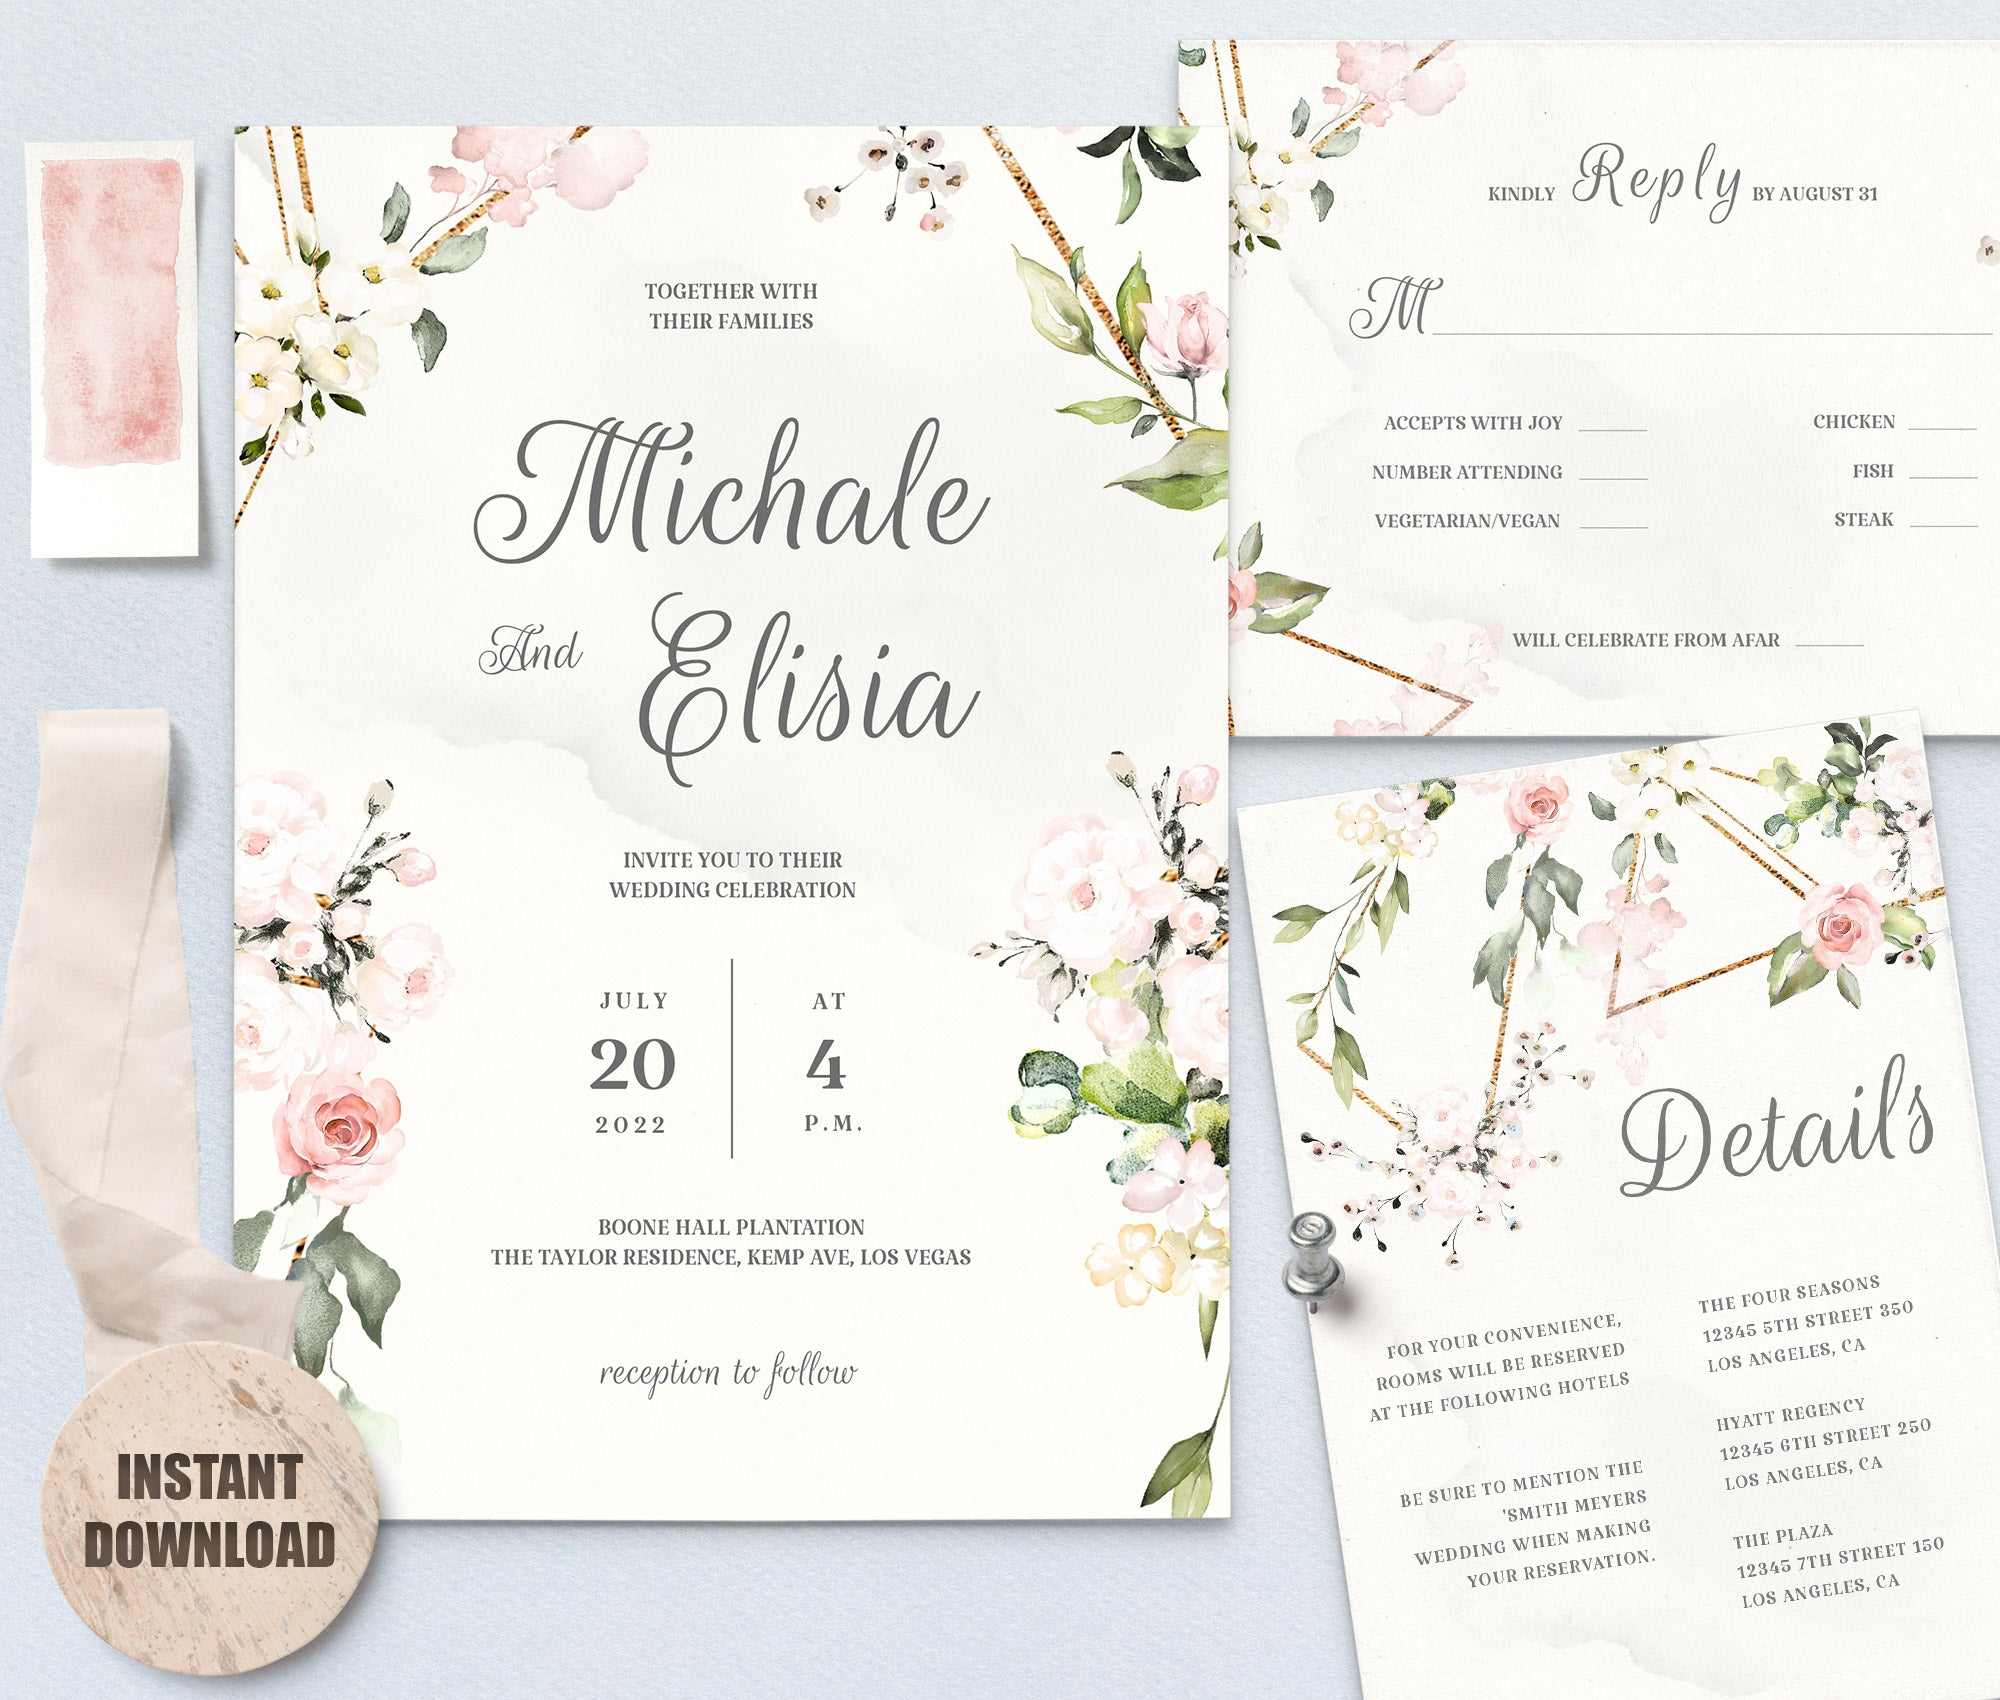 Elegant WEDDING INVITATION Template - Loval 7